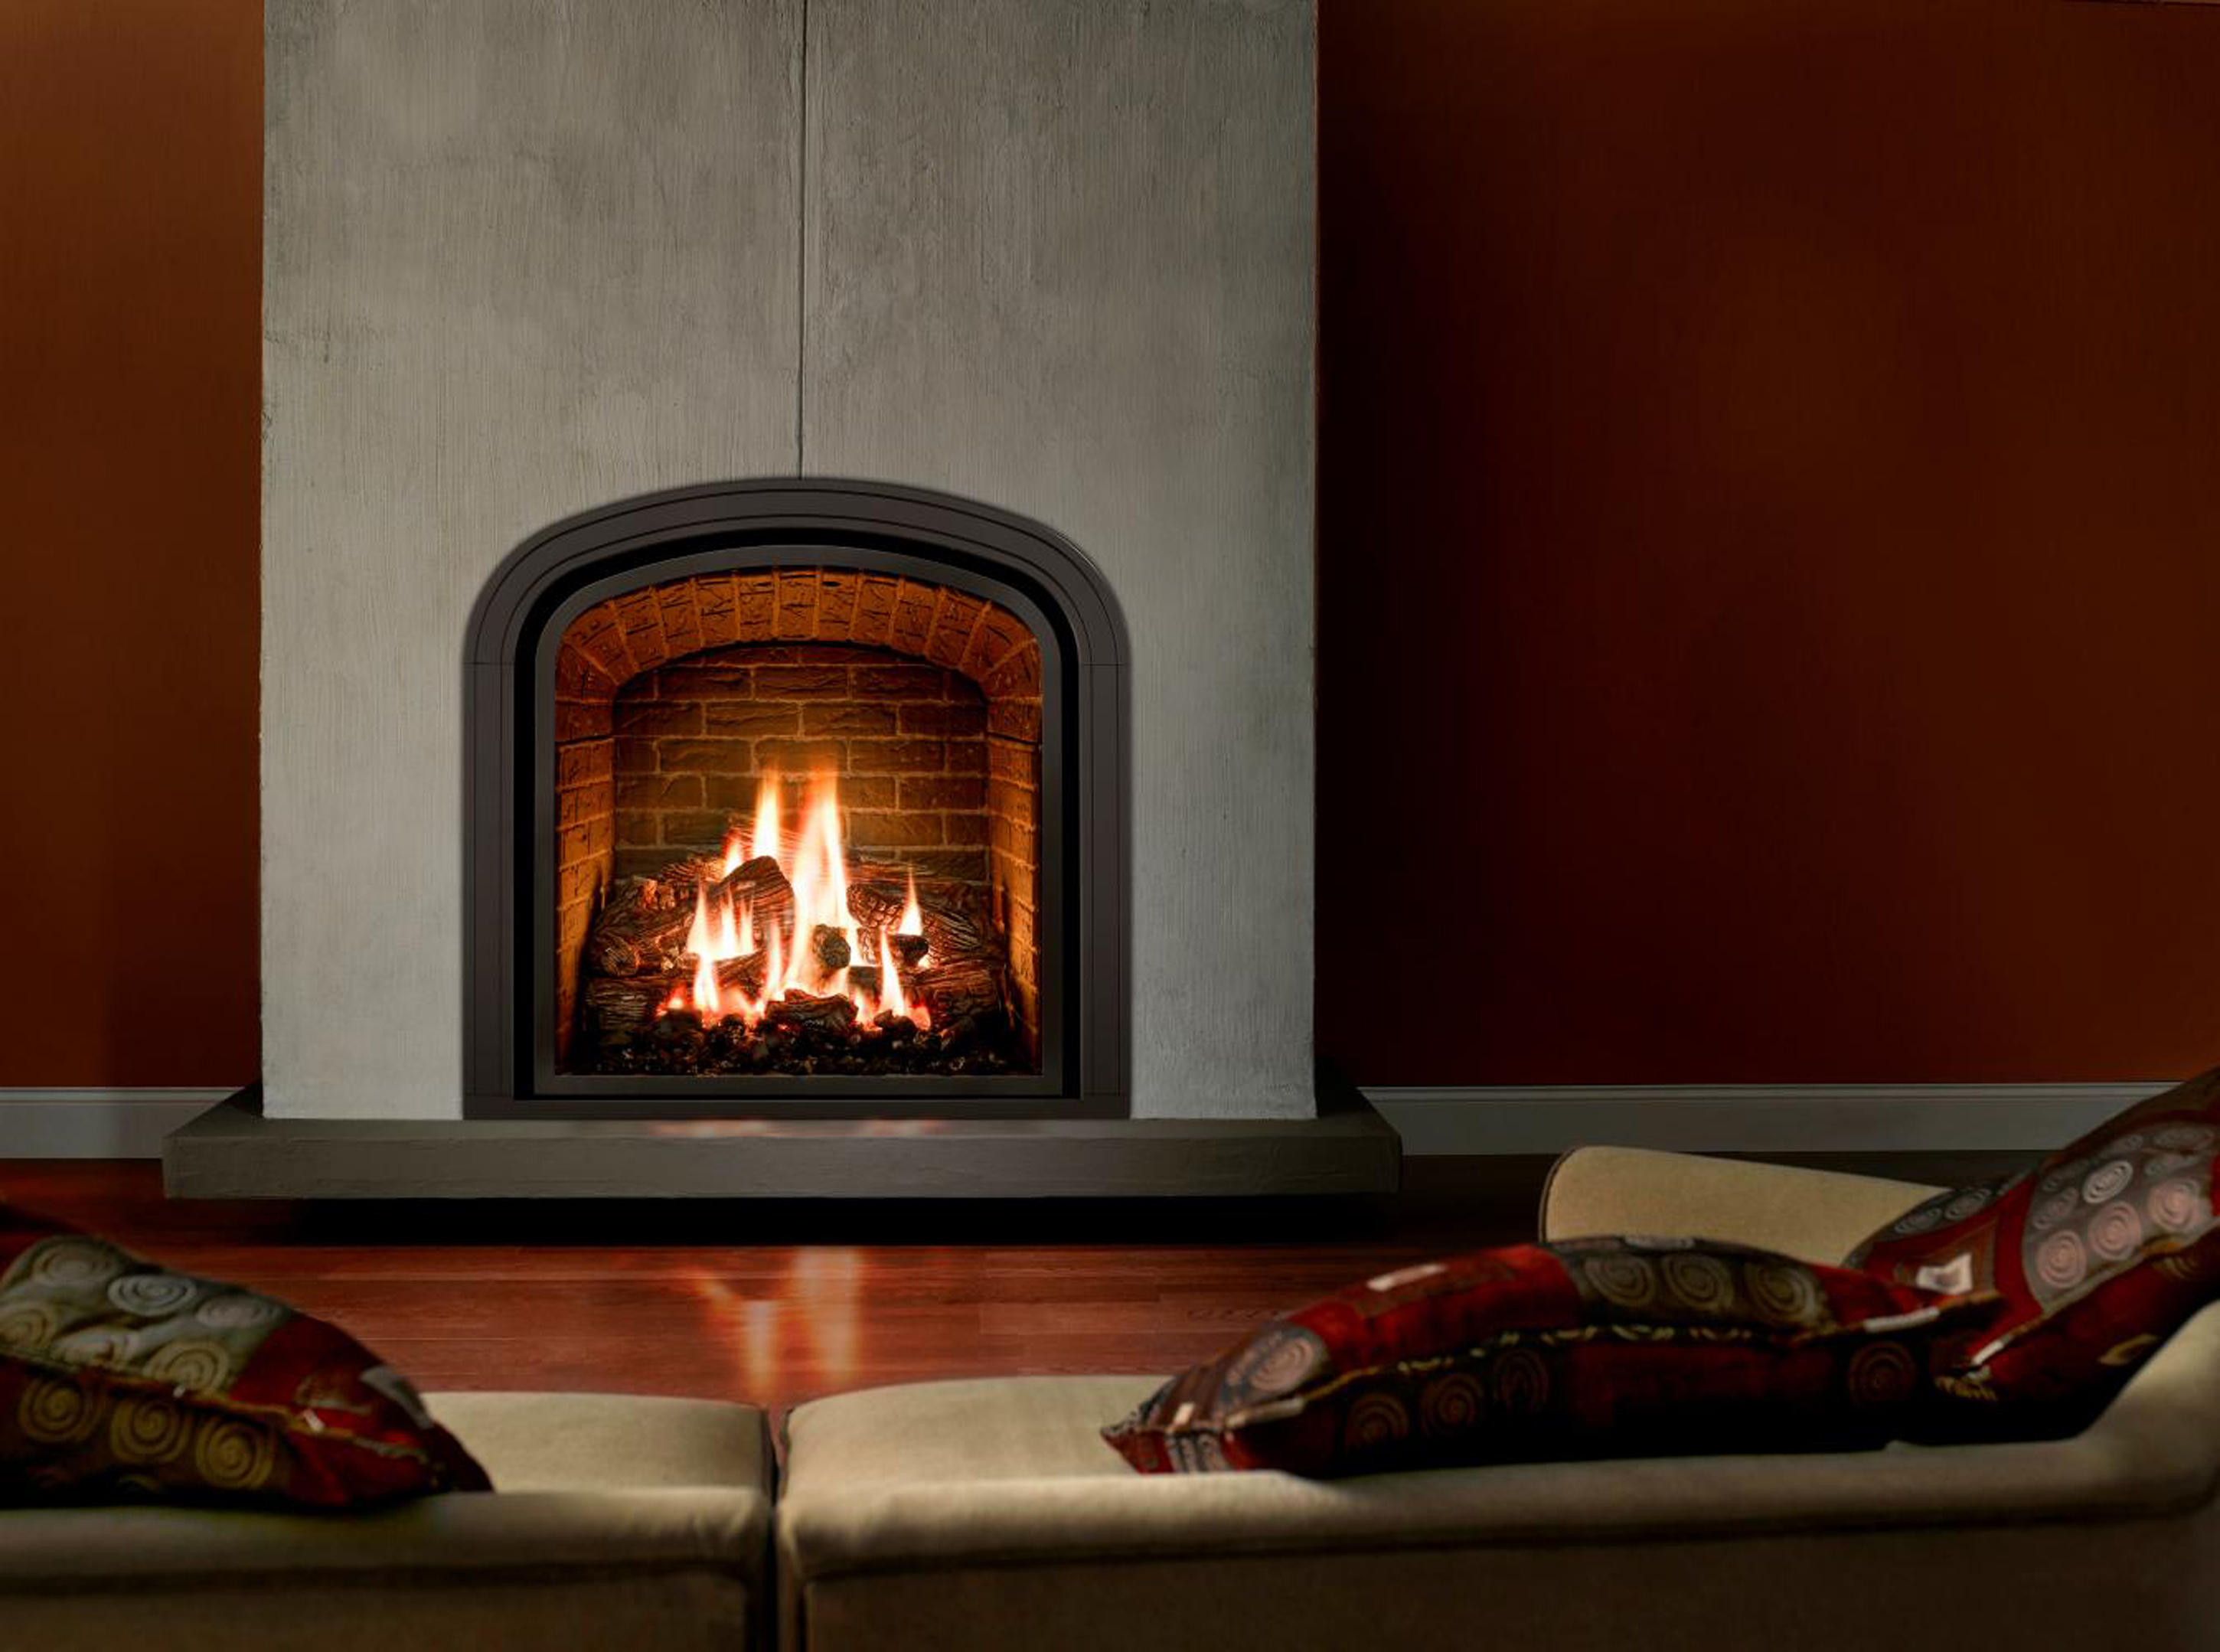 Luxury Fireplace Design Idea With Brown Brick Fireplace Wall Gray Red Wall And Brown Hardwood Floor Tile Elegant Fireplace Design Ideas (Image 57 of 123)